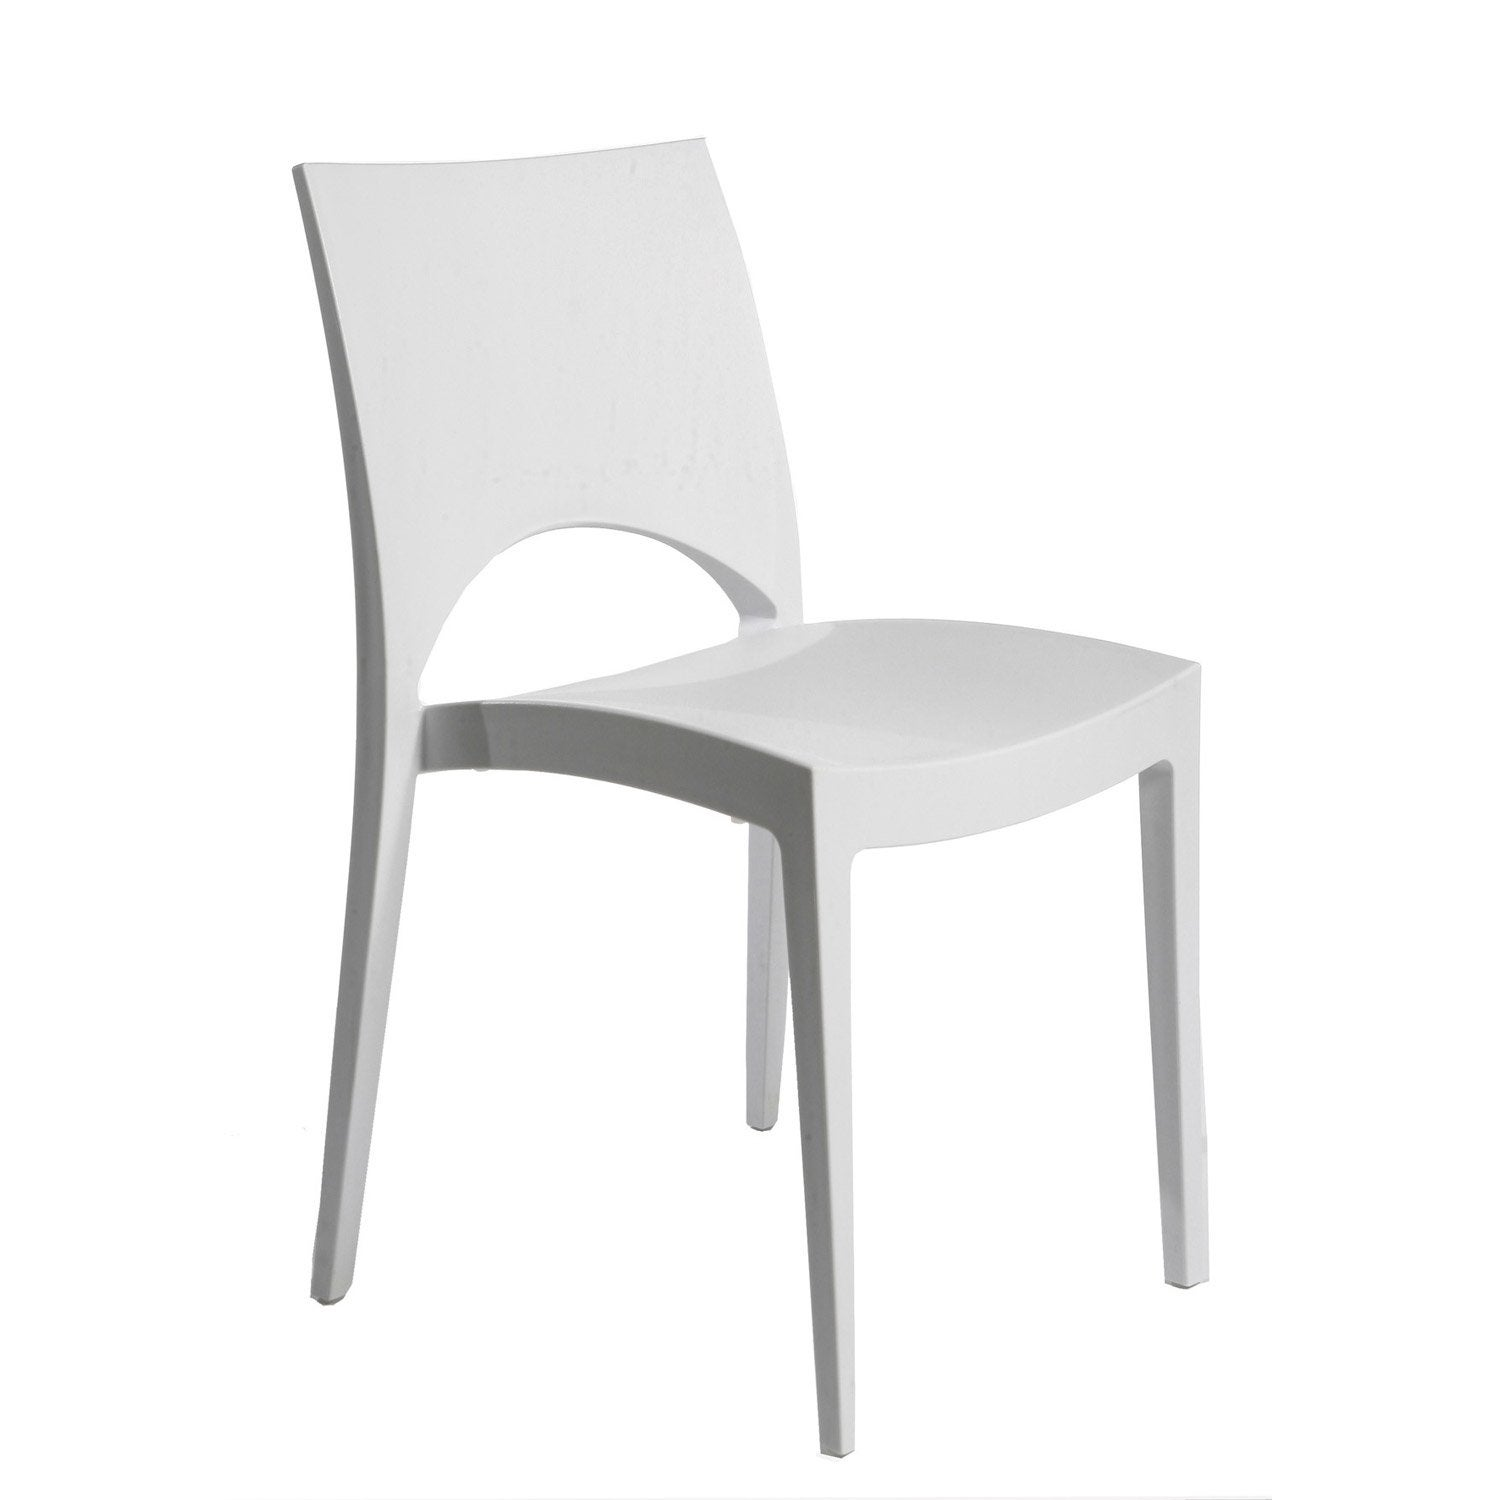 Chaise de jardin en r sine paris greenpol blanc leroy merlin for Chaise blanche plastique